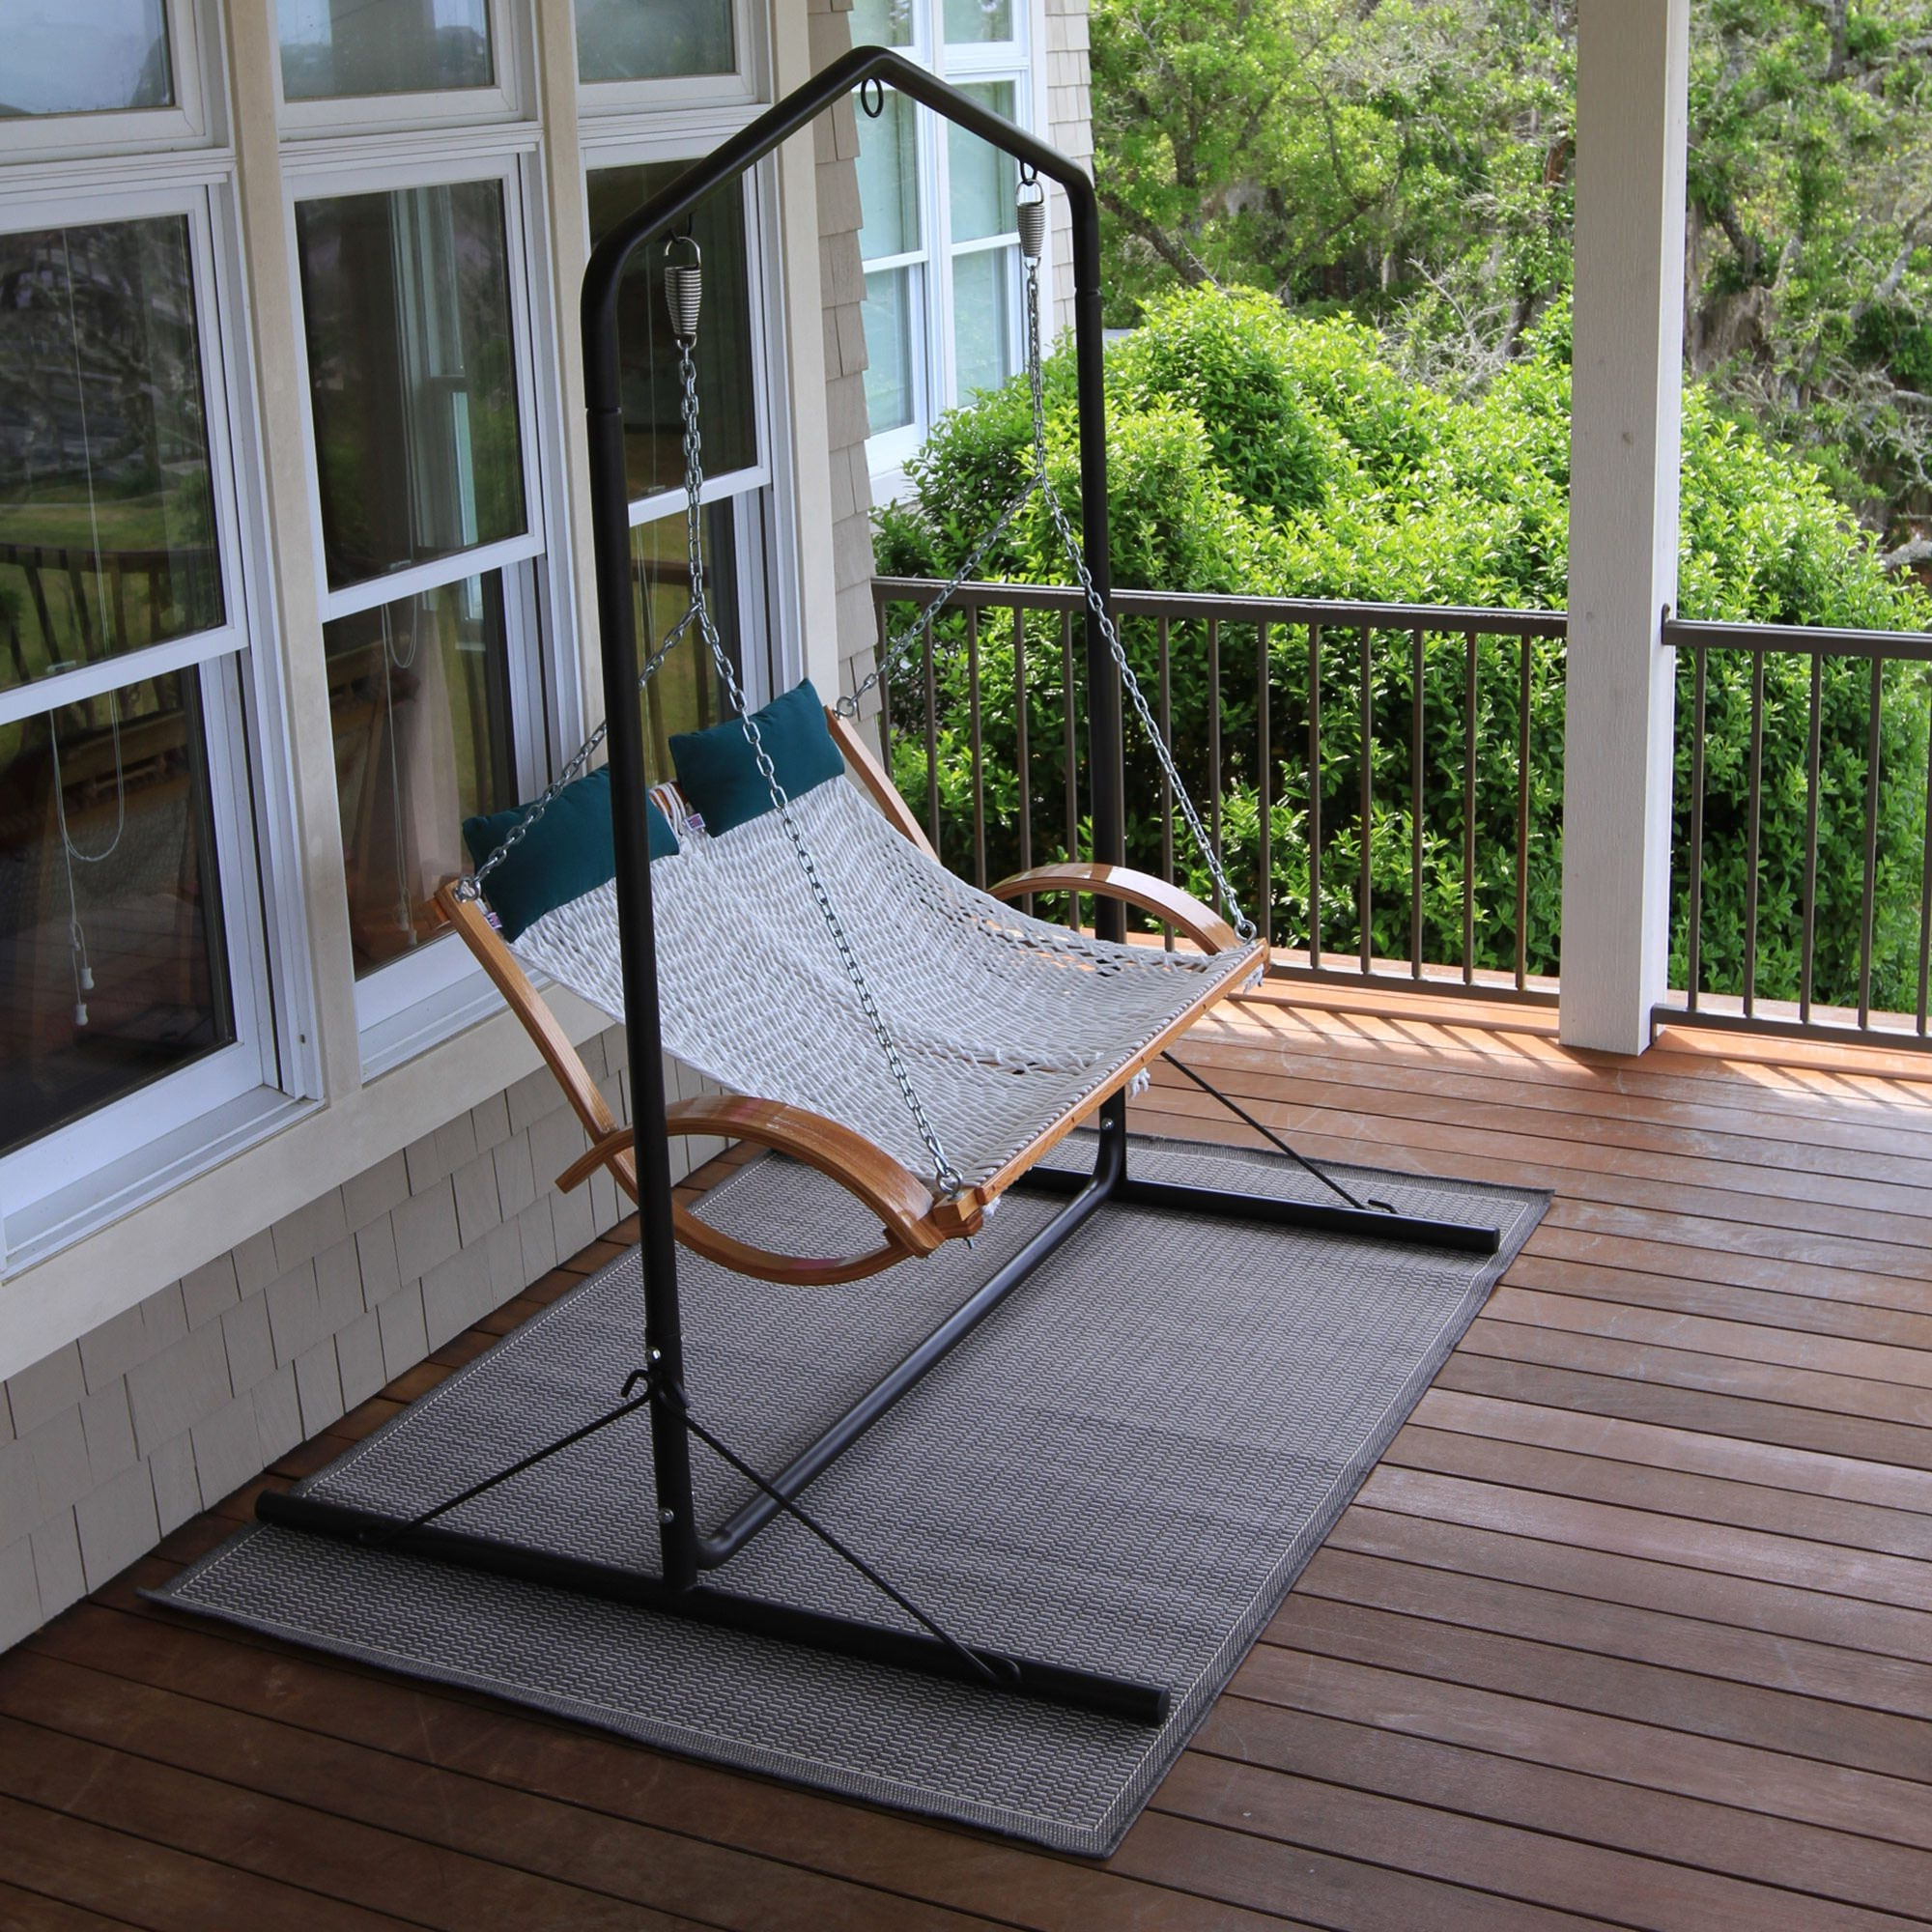 Porch Swings With Stand With Regard To Popular Metal Porch Swings With Stands (Gallery 9 of 25)